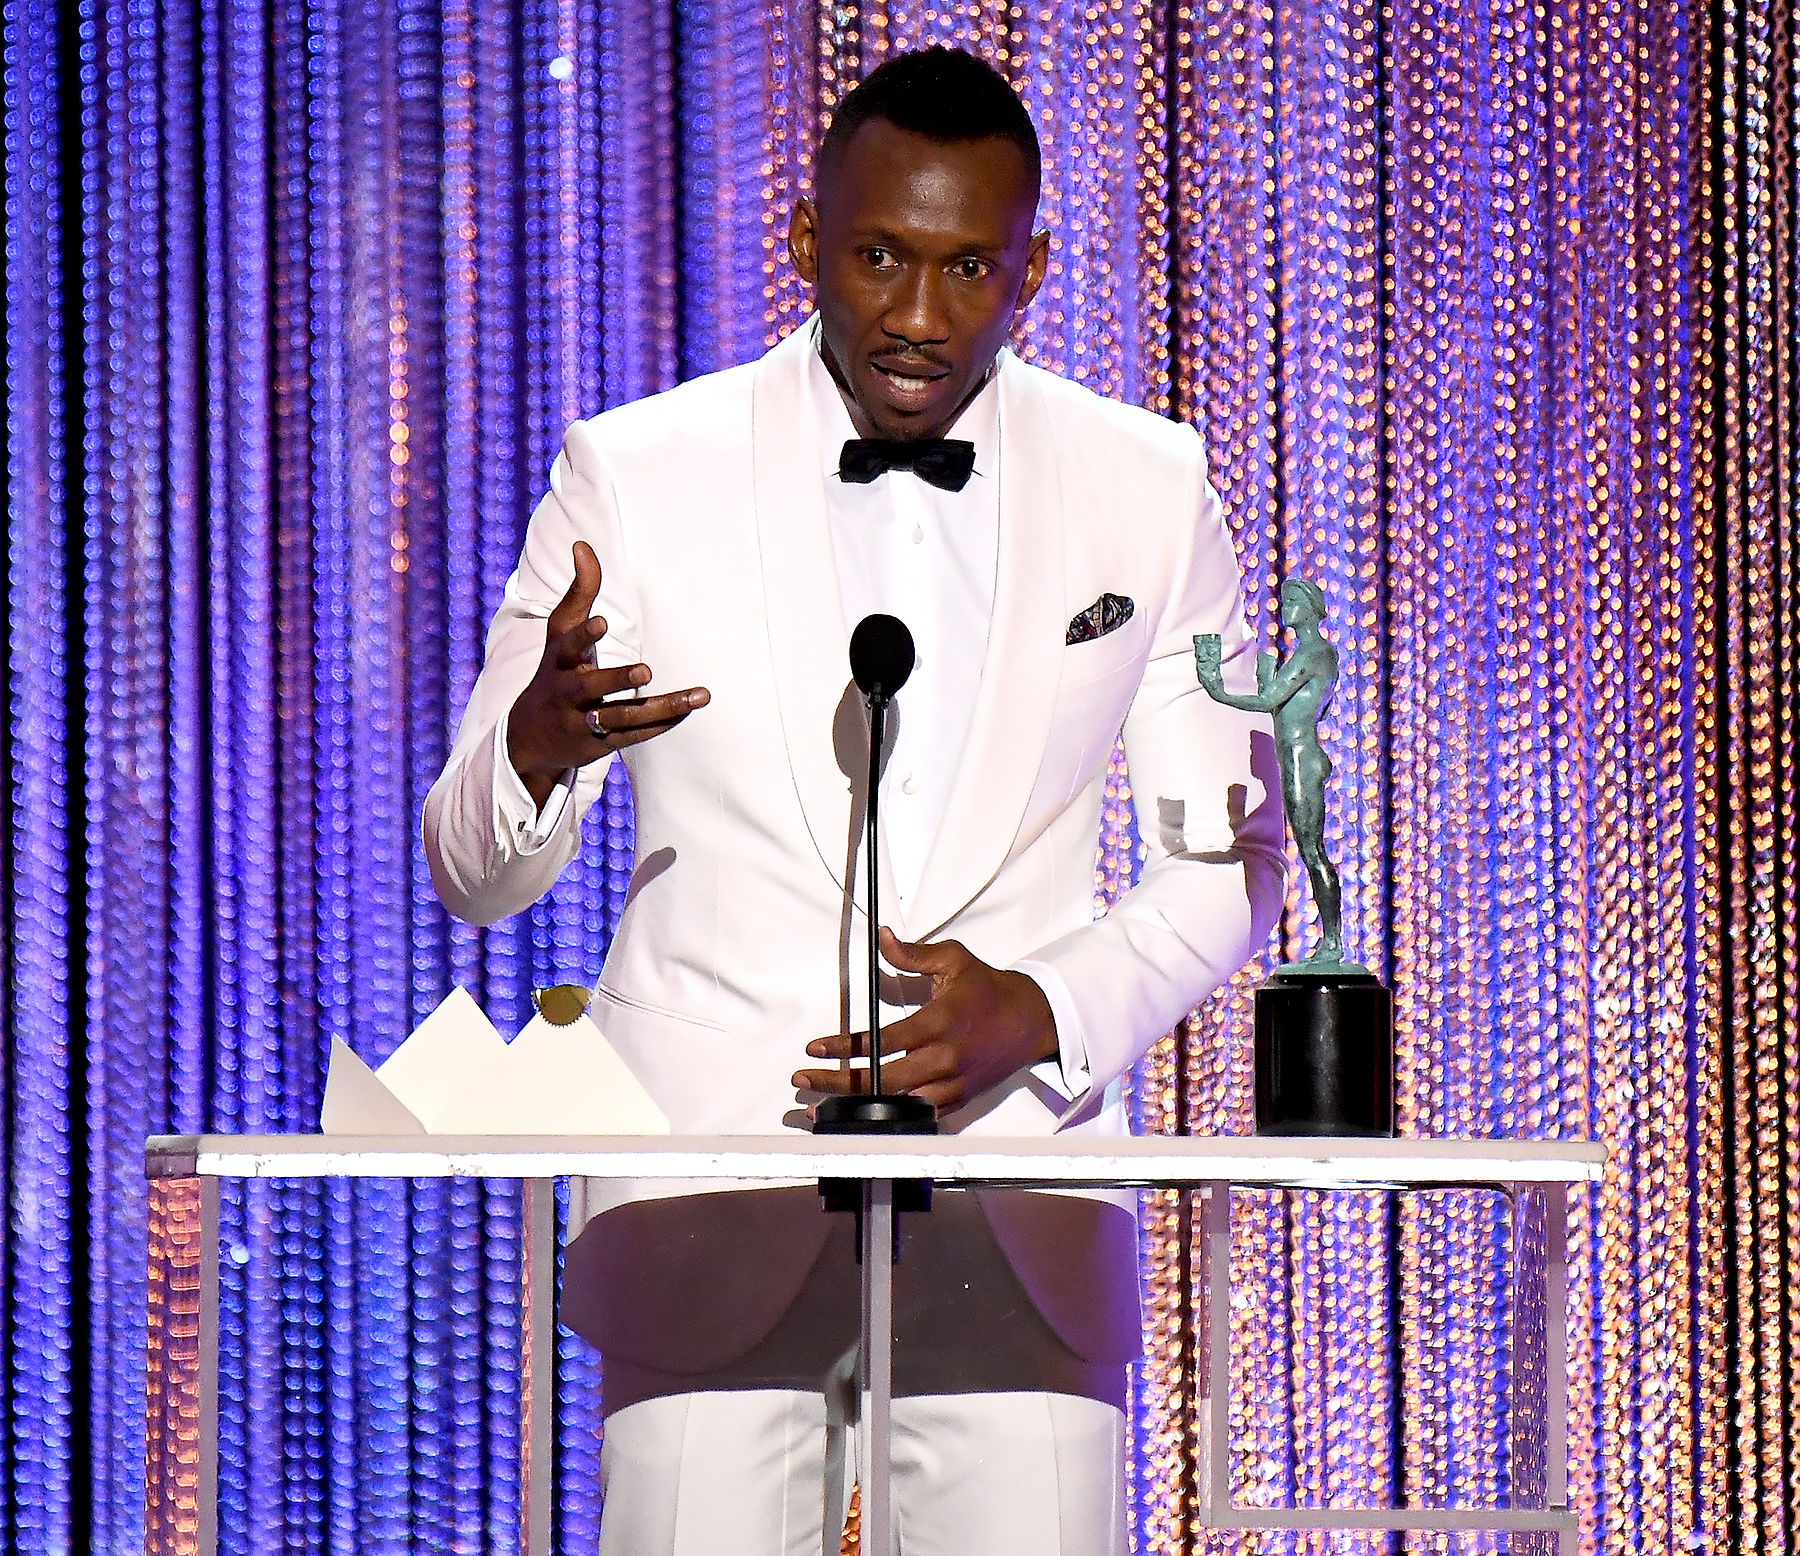 Mahershala Ali accepts the award for Best Male Actor in a Supporting Role for 'Moonlight,' onstage during the 23rd Annual Screen Actors Guild Awards at The Shrine Expo Hall on January 29, 2017 in Los Angeles, California.